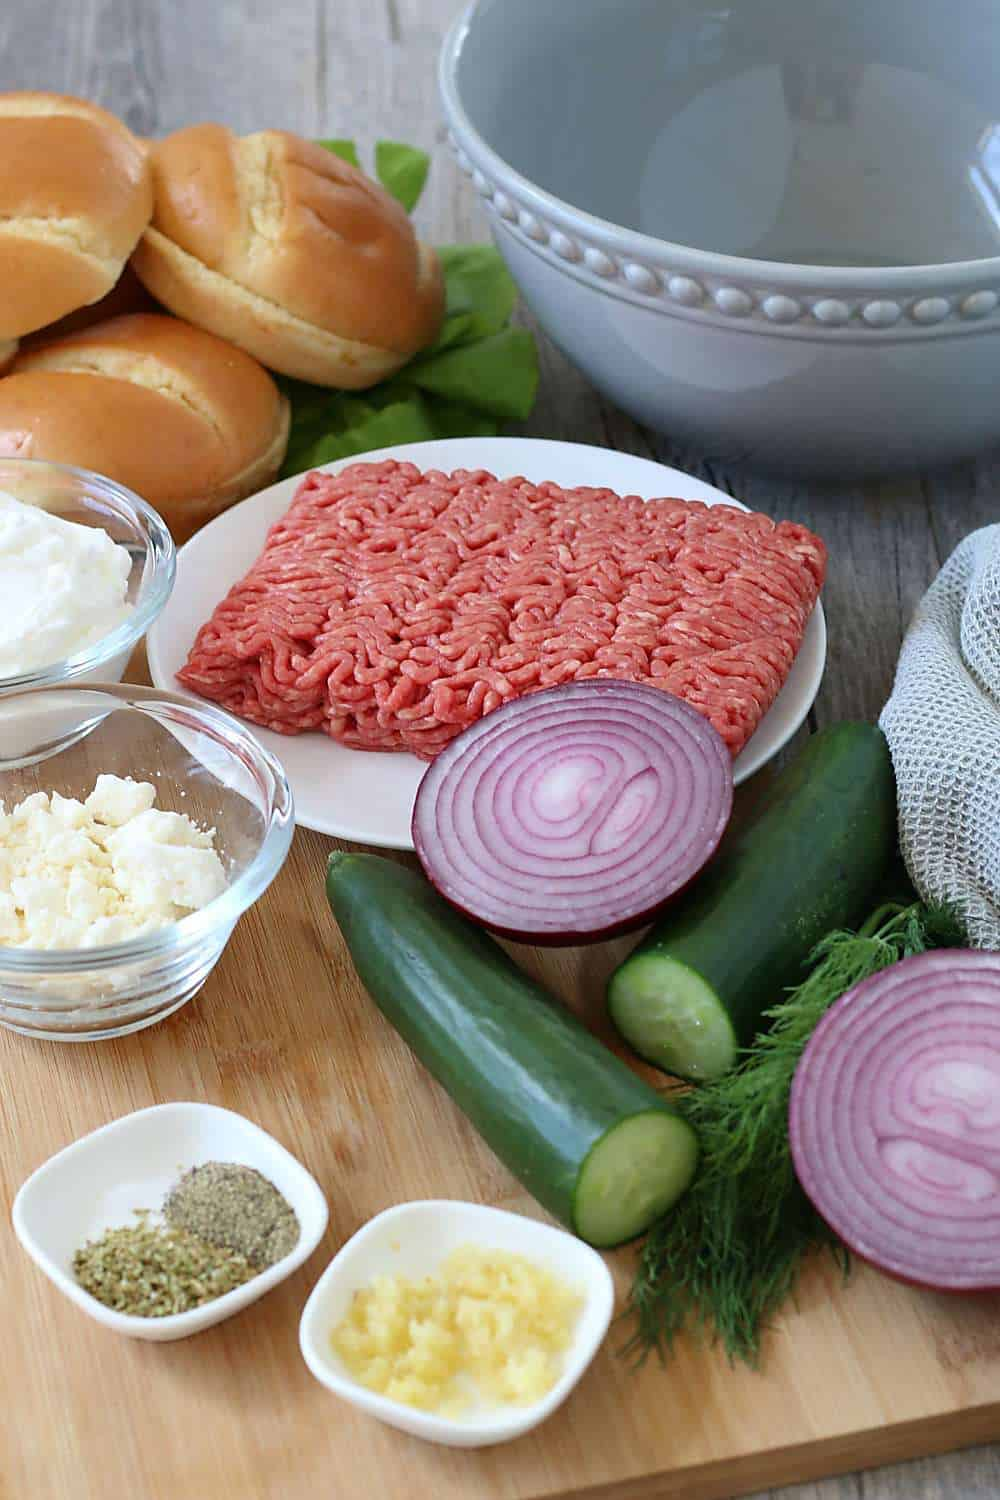 Ingredients necessary for making my Greek burger recipe shown before we begin.